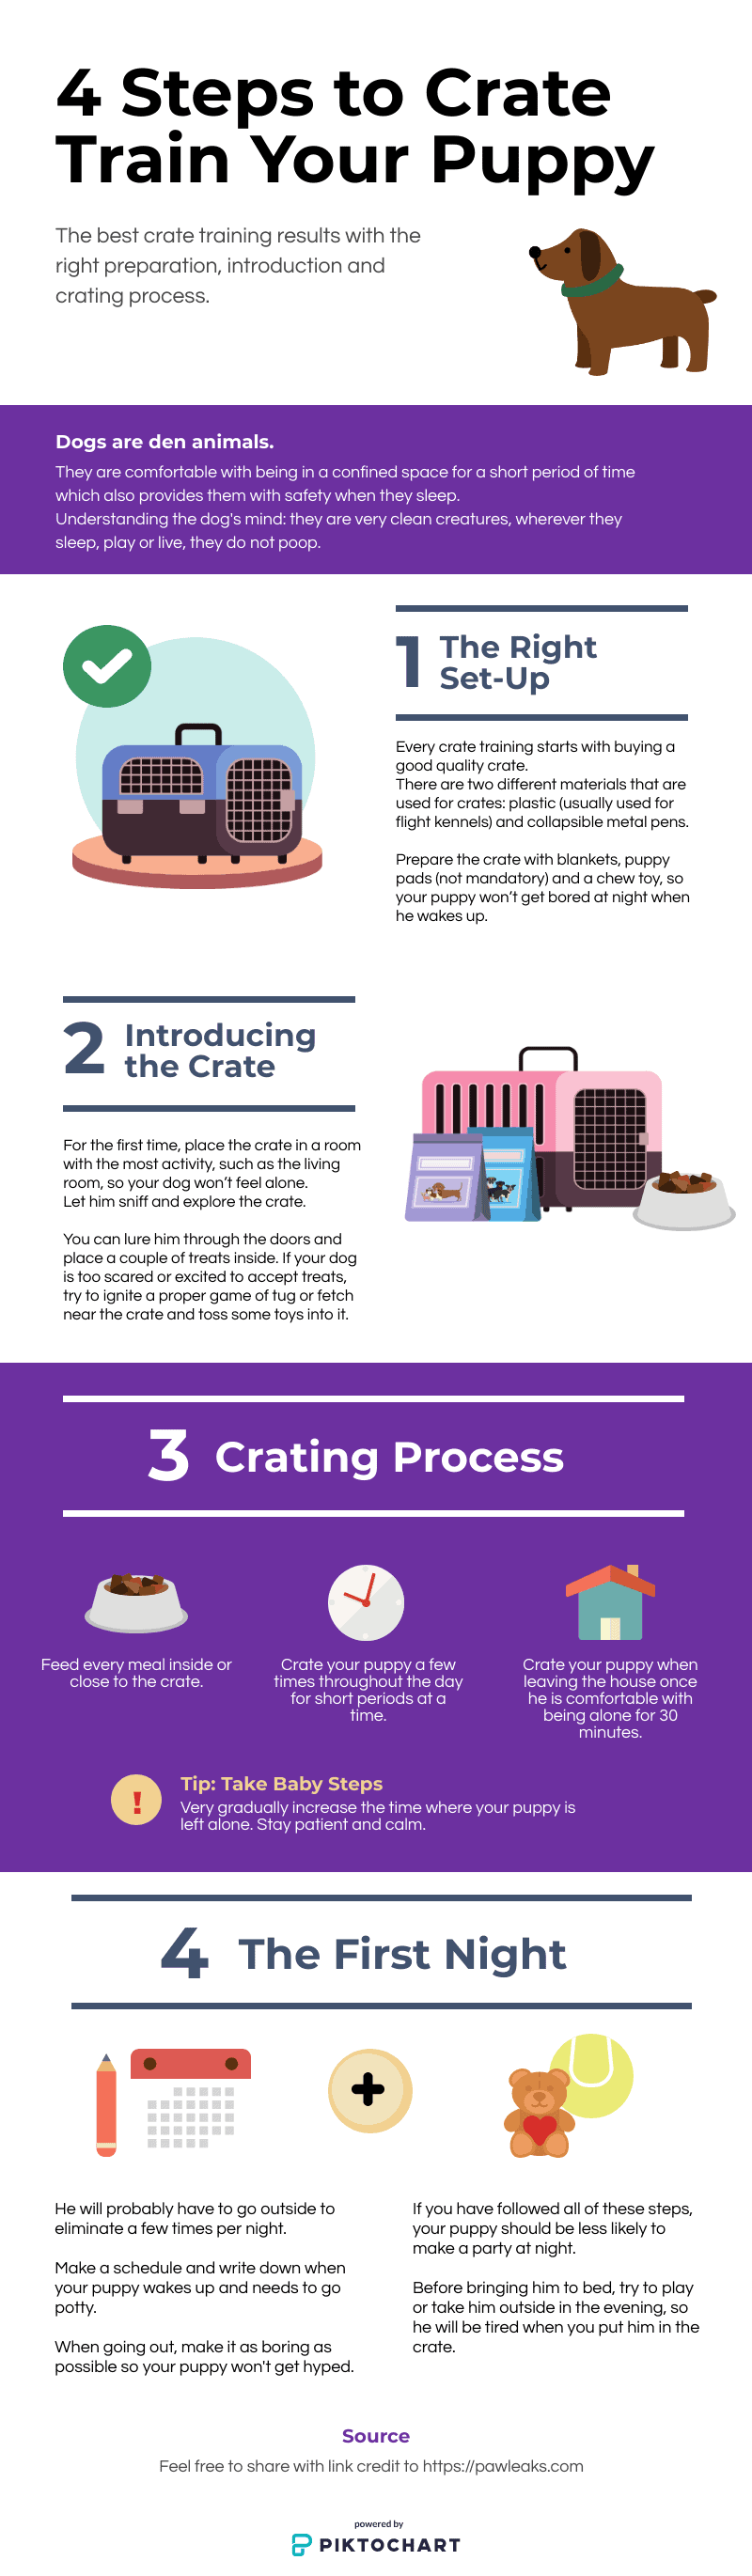 Crate training for any dog in 4 simple steps with illustrations and explanations.